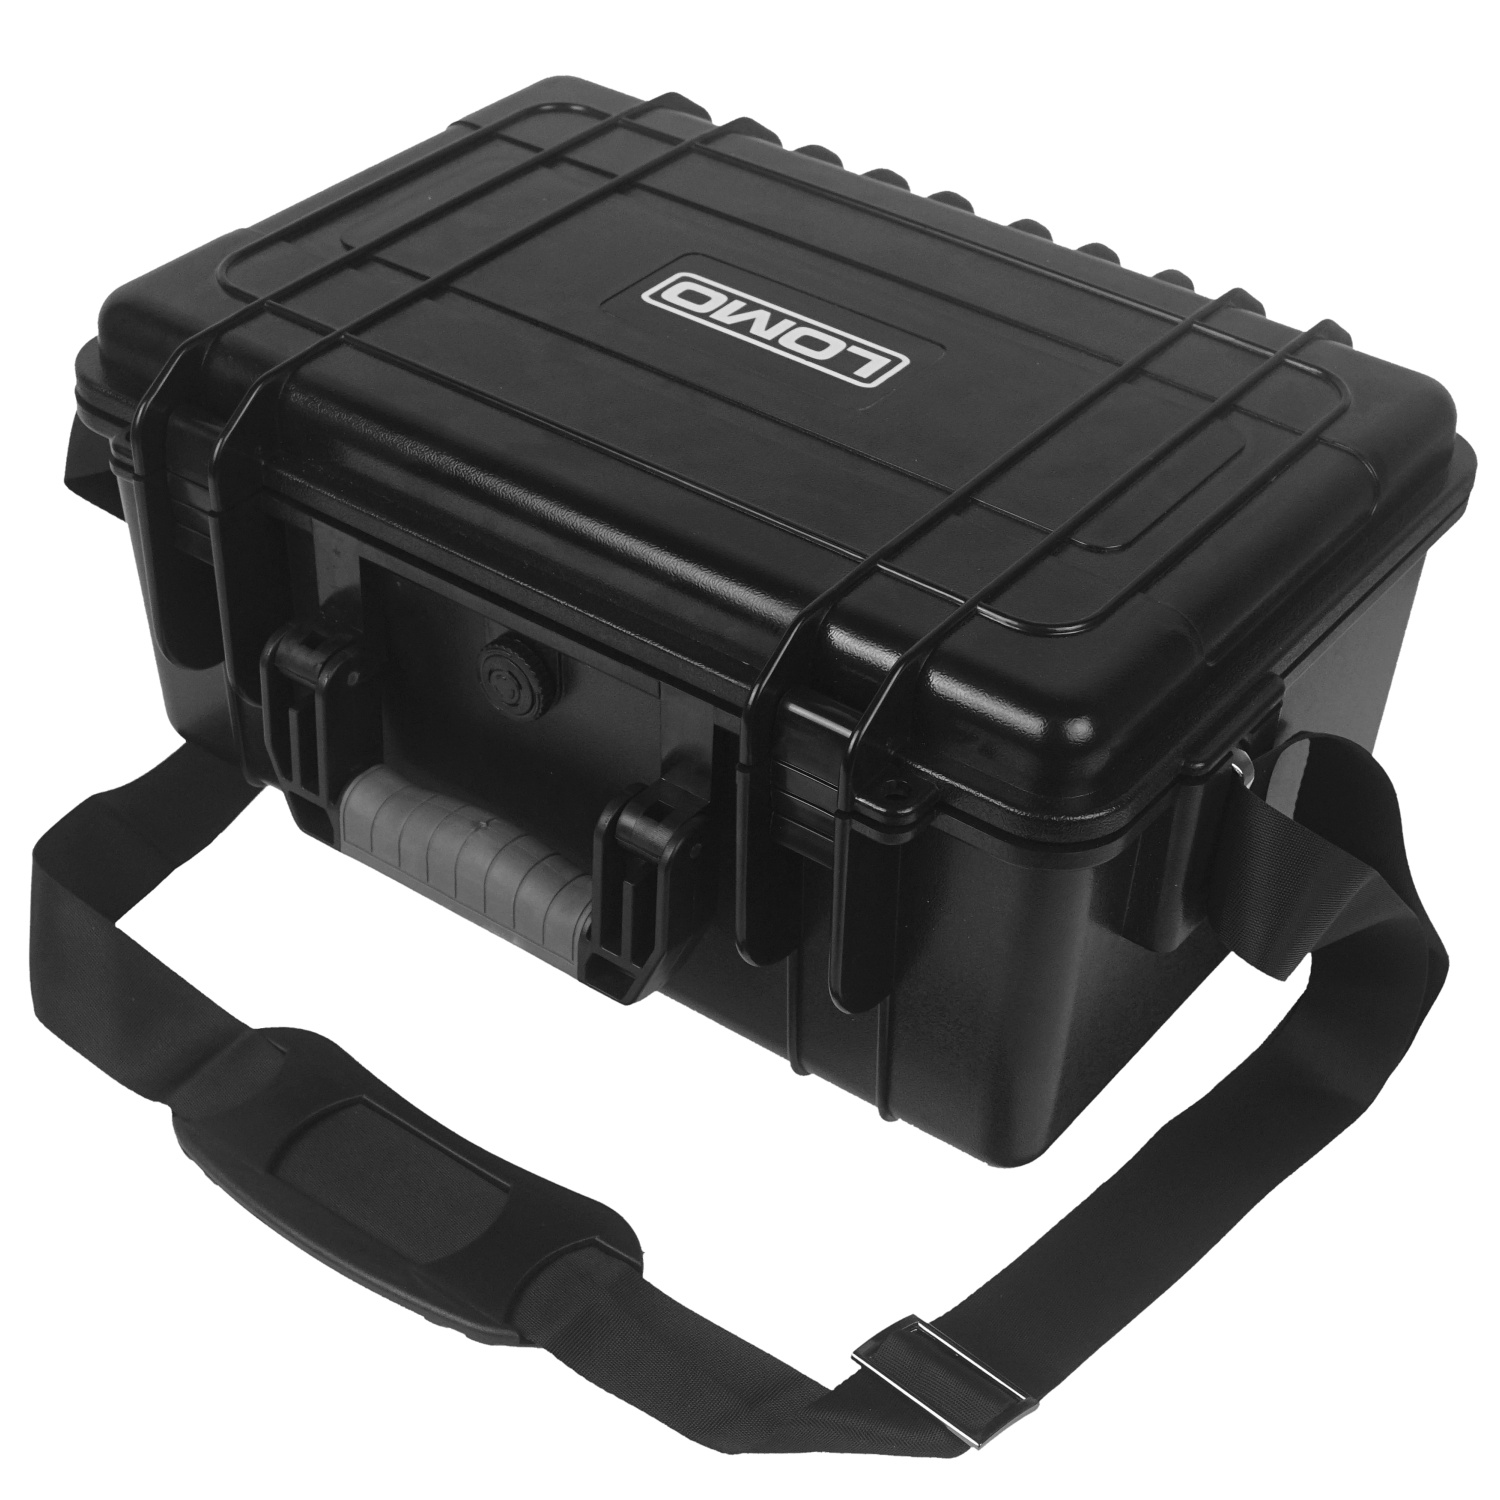 DB3 - Protective Case Dry Box with Cubed Foam